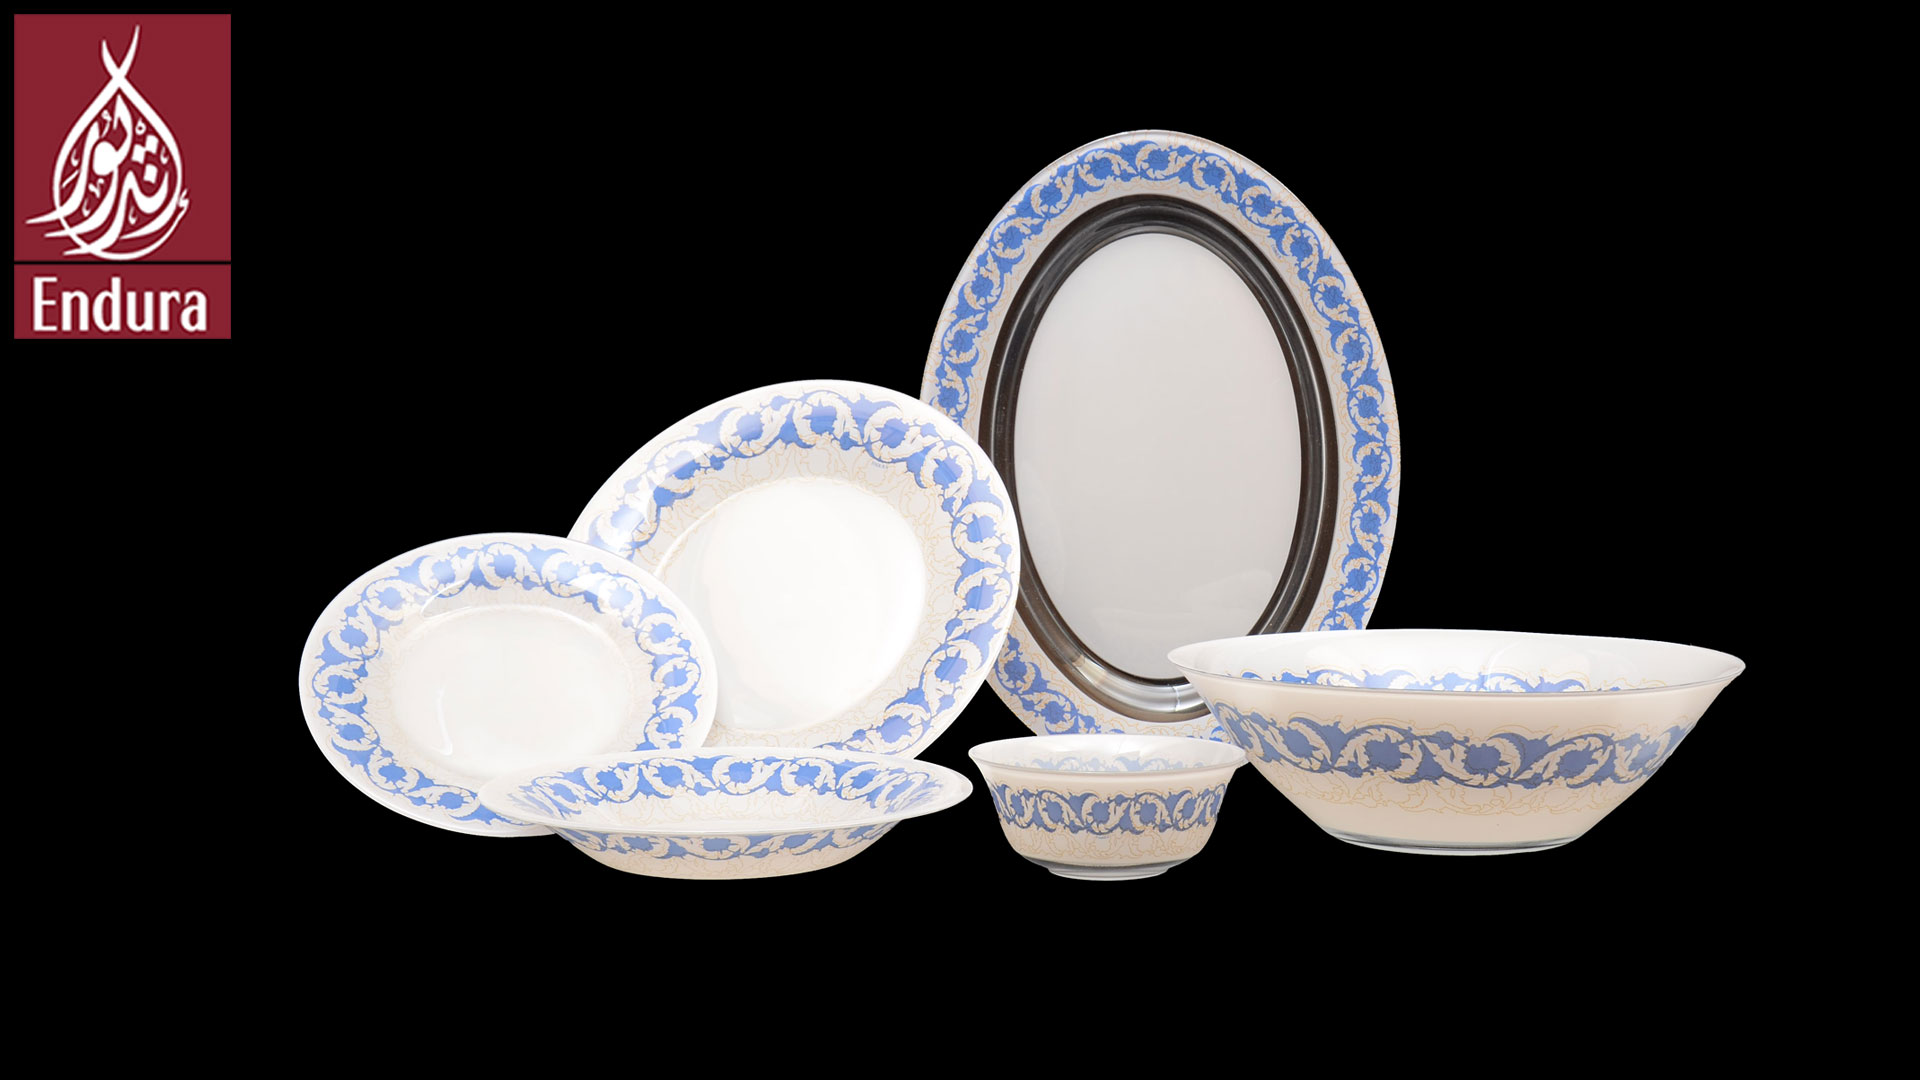 & Endura Damask Blue dinner set of 46#k6068#